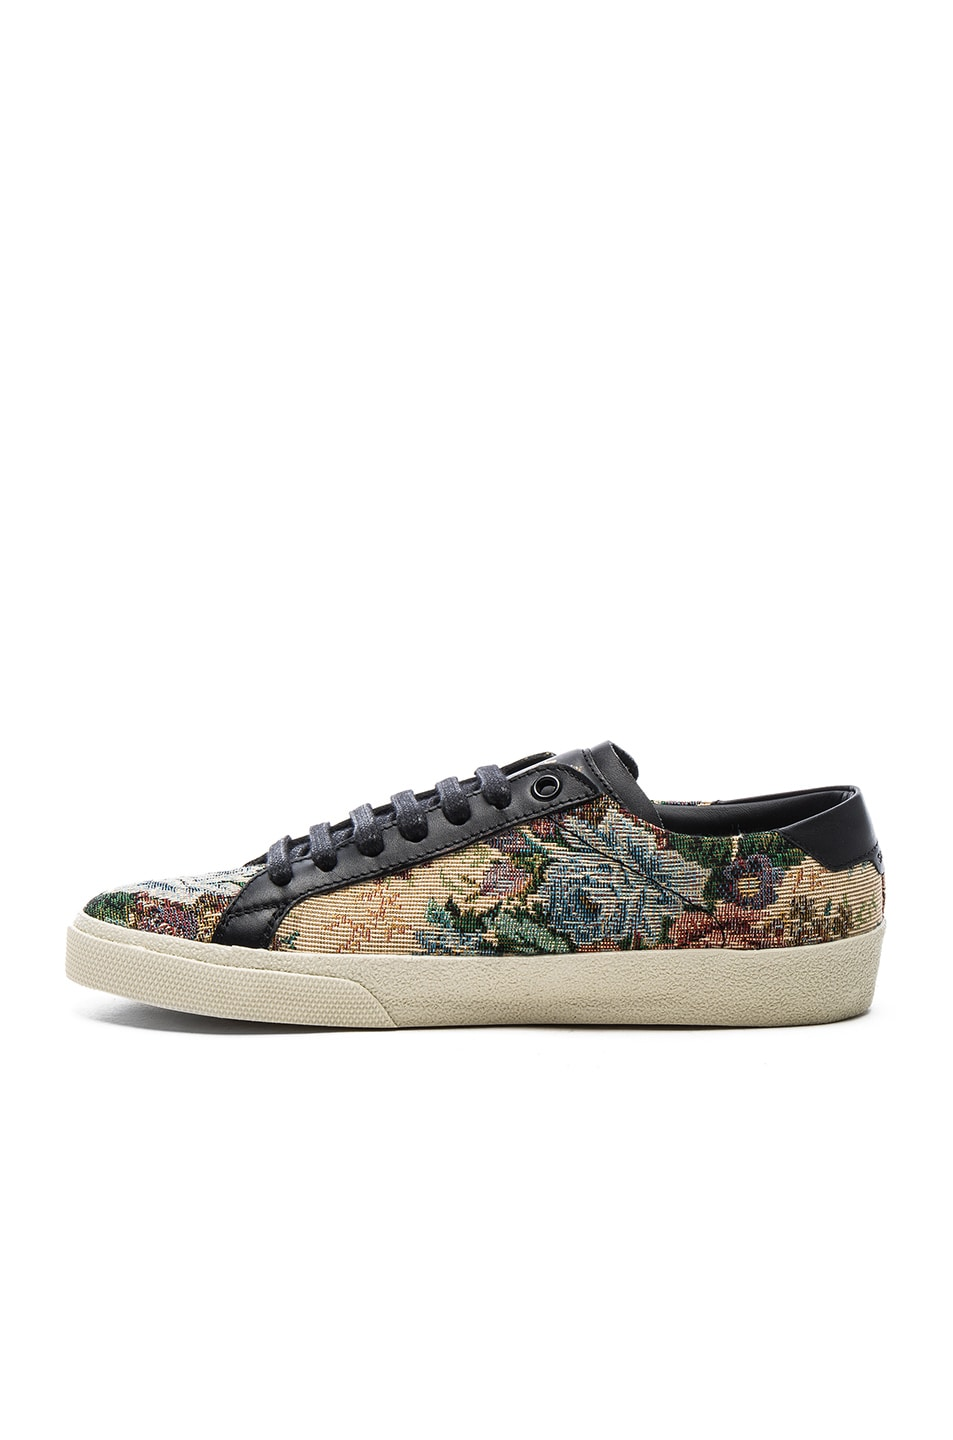 Image 5 of Saint Laurent Court Classic Floral Tapestry Sneakers in Black & Multi